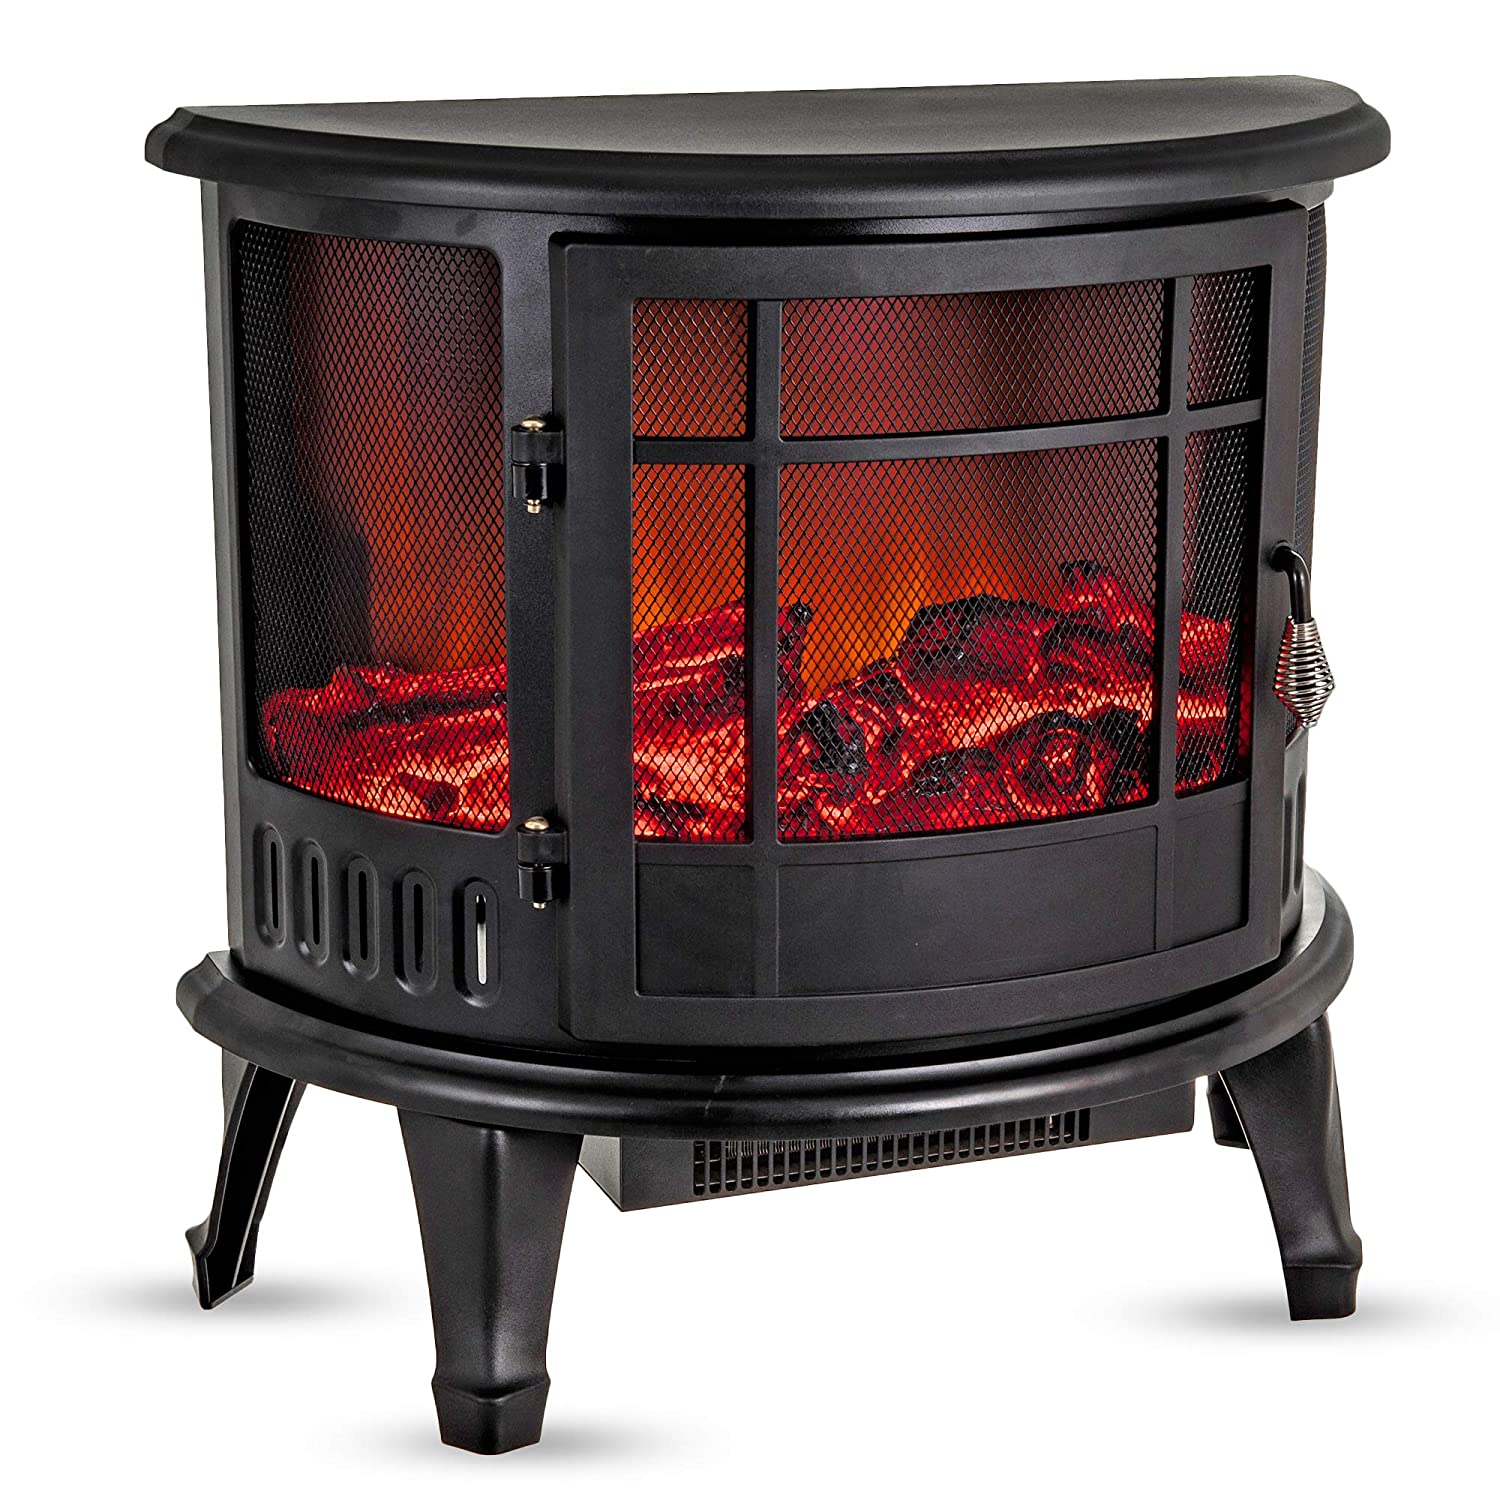 Fineway Electric Stove Heater with Log Burner Flame Effect Fire – 1800W, Black – Freestanding Fireplace with Wood Burning LED Light – Adjustable Temperature & Flame Panoramic Design With Large Window Fineway.